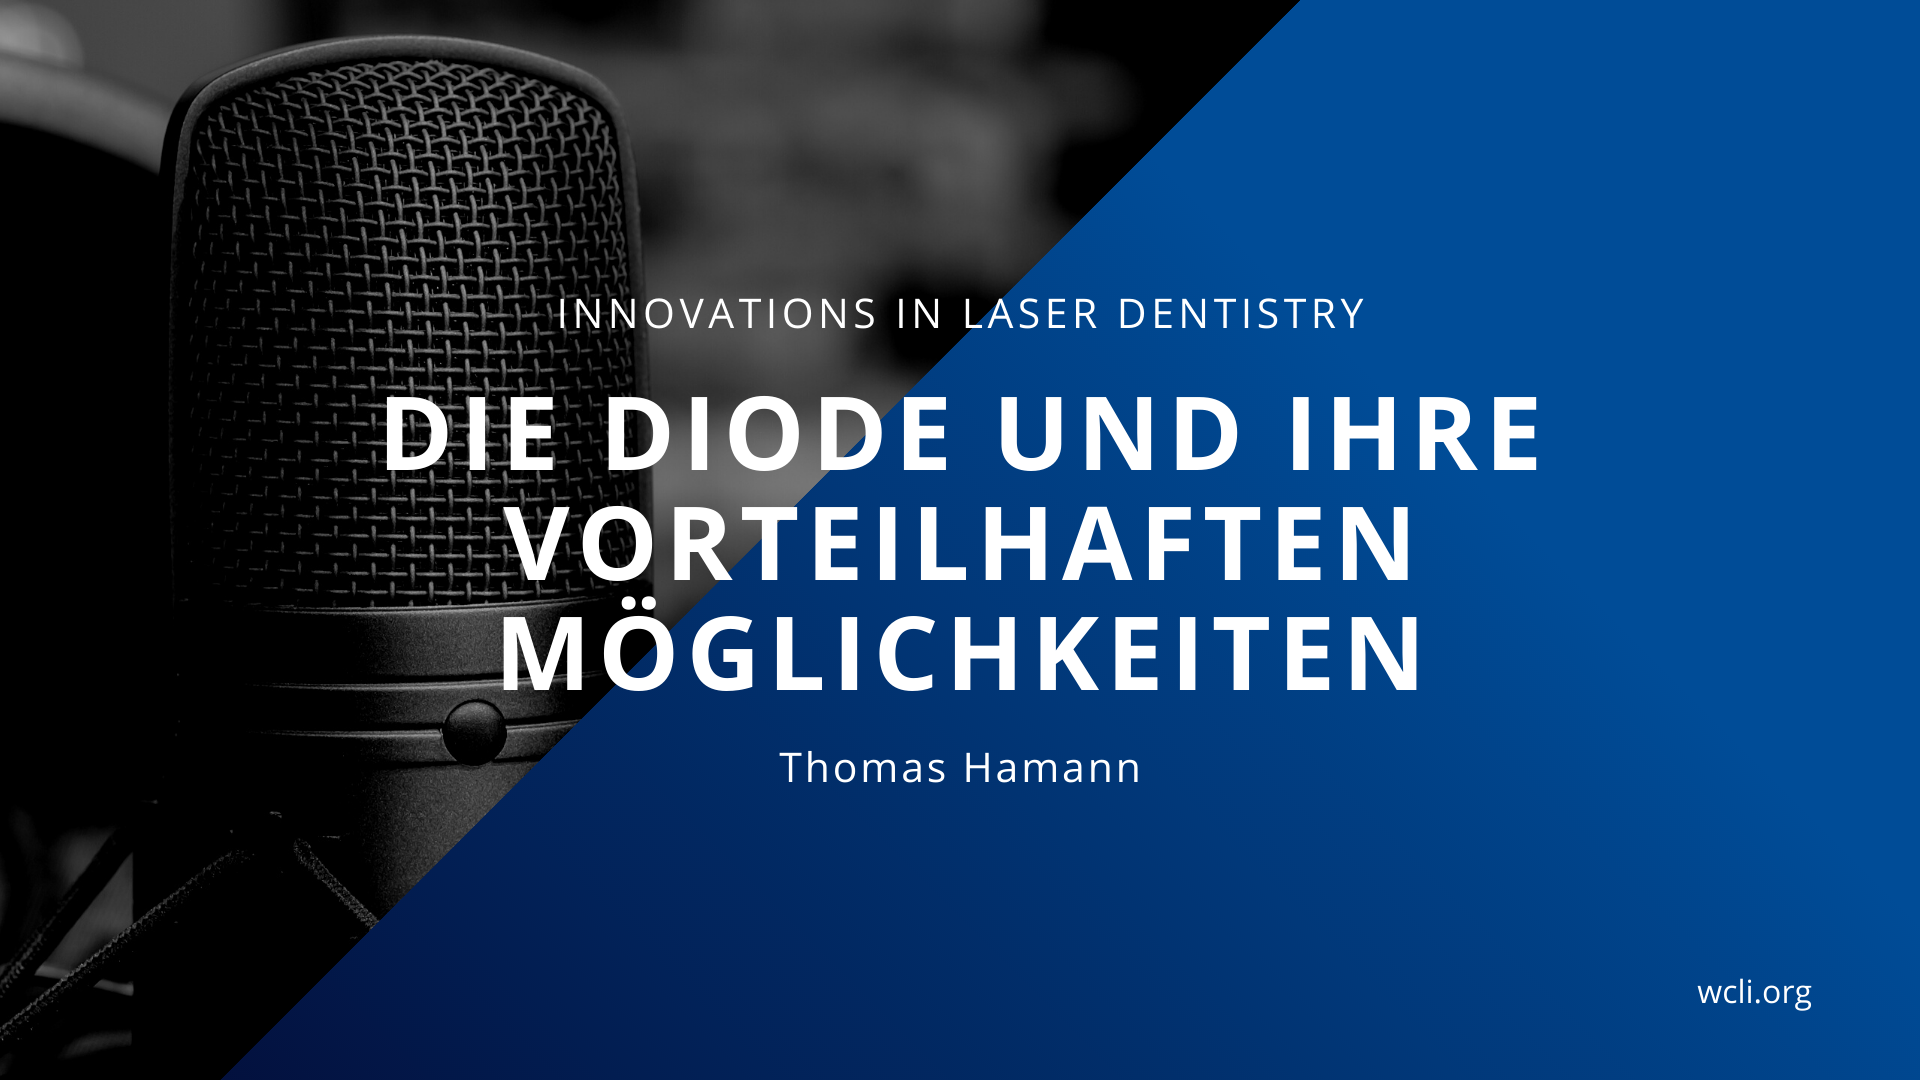 webinar-cover-Thomas Hamann